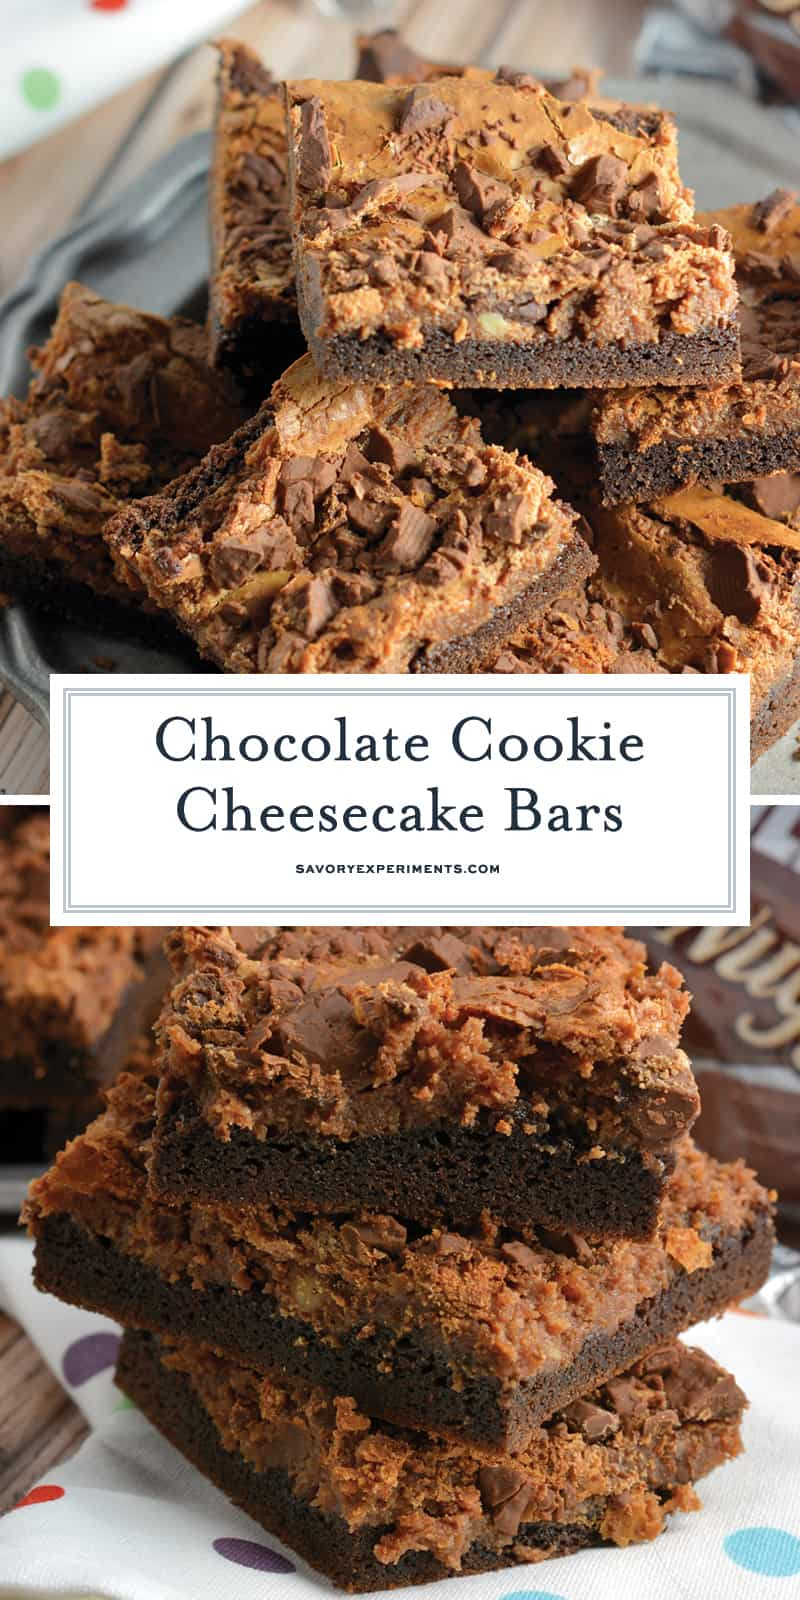 Triple Chocolate Cookie Cheesecake Bars are a bar with brownie cake mix base, chocolate cheesecake center and milk chocolate topping, this easy bar recipe will please any chocolate lover! #barrecipes #bestchocolaterecipes www.savoryexperiments.com